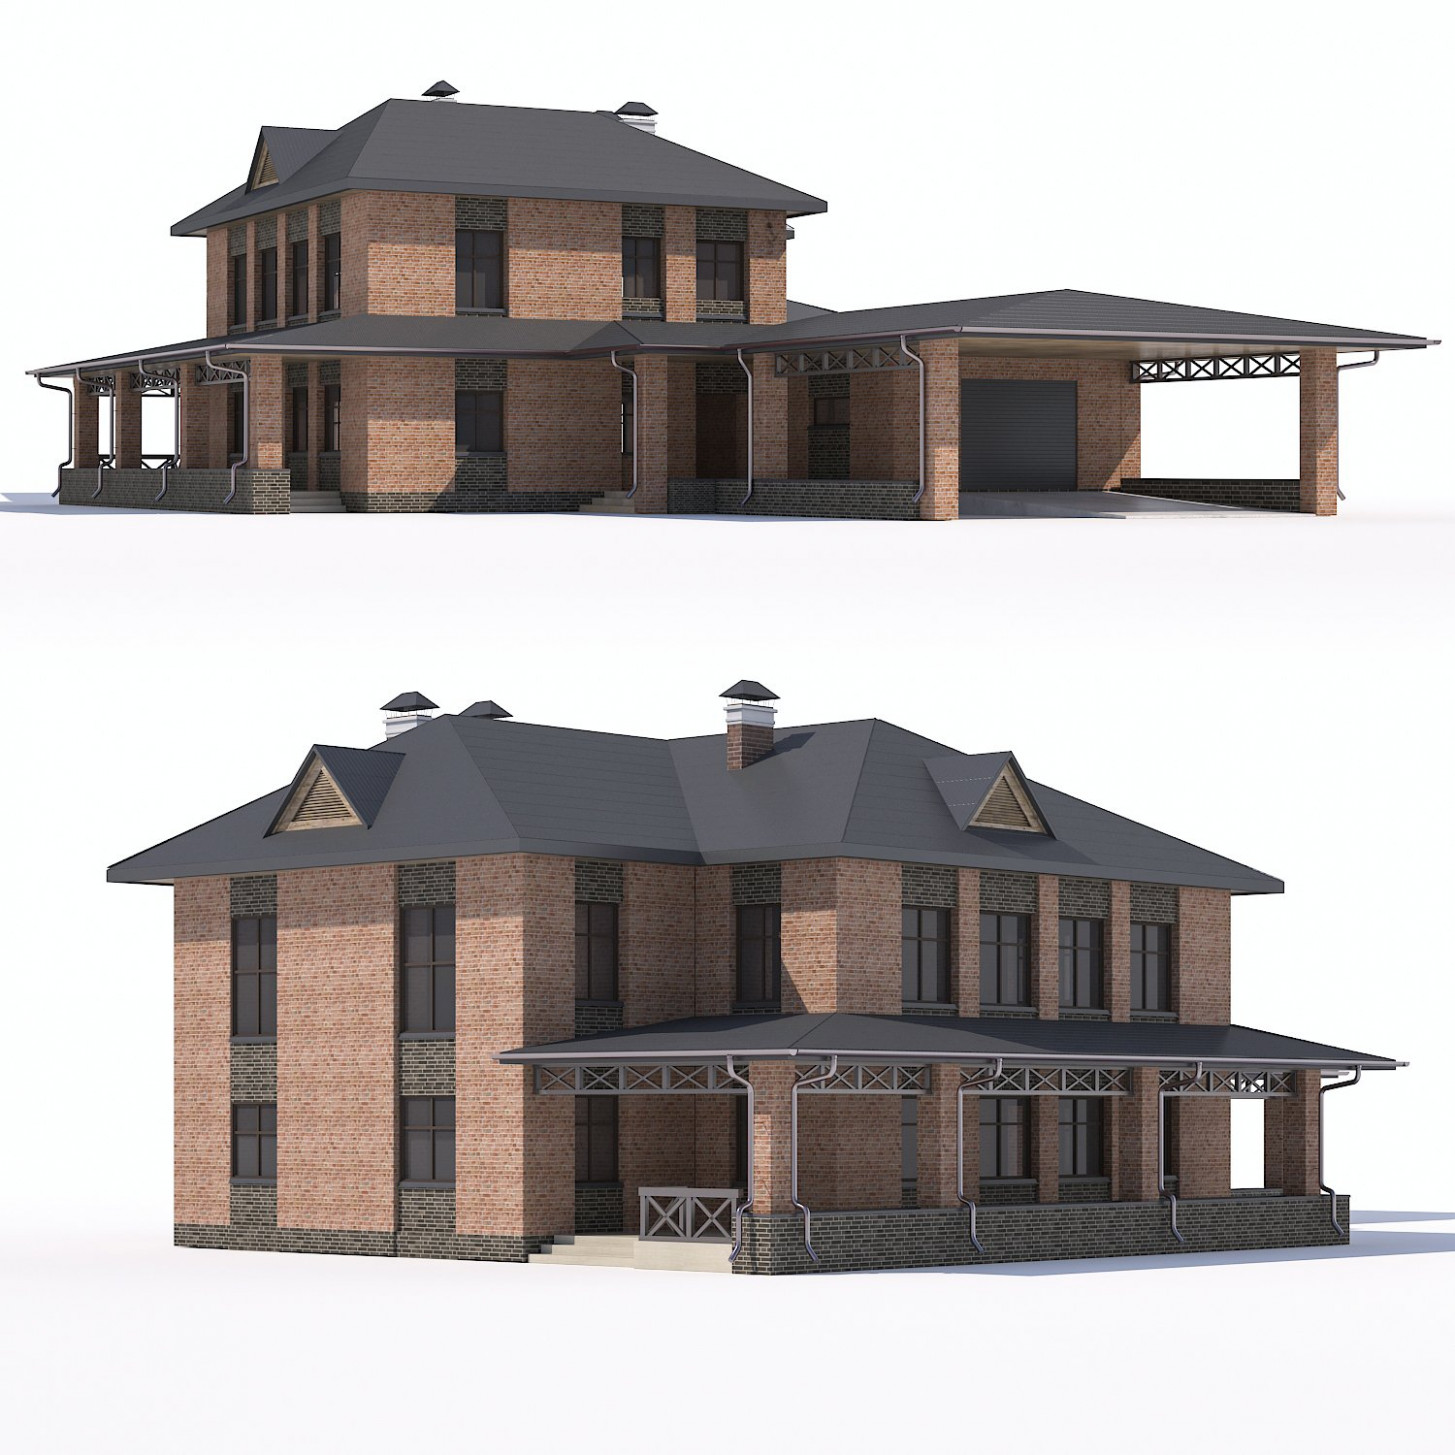 Two Storey Country House With Attached Garage And Carport Model 10D In Buildings 10DExport How To Build A Carport Attached To A Garage